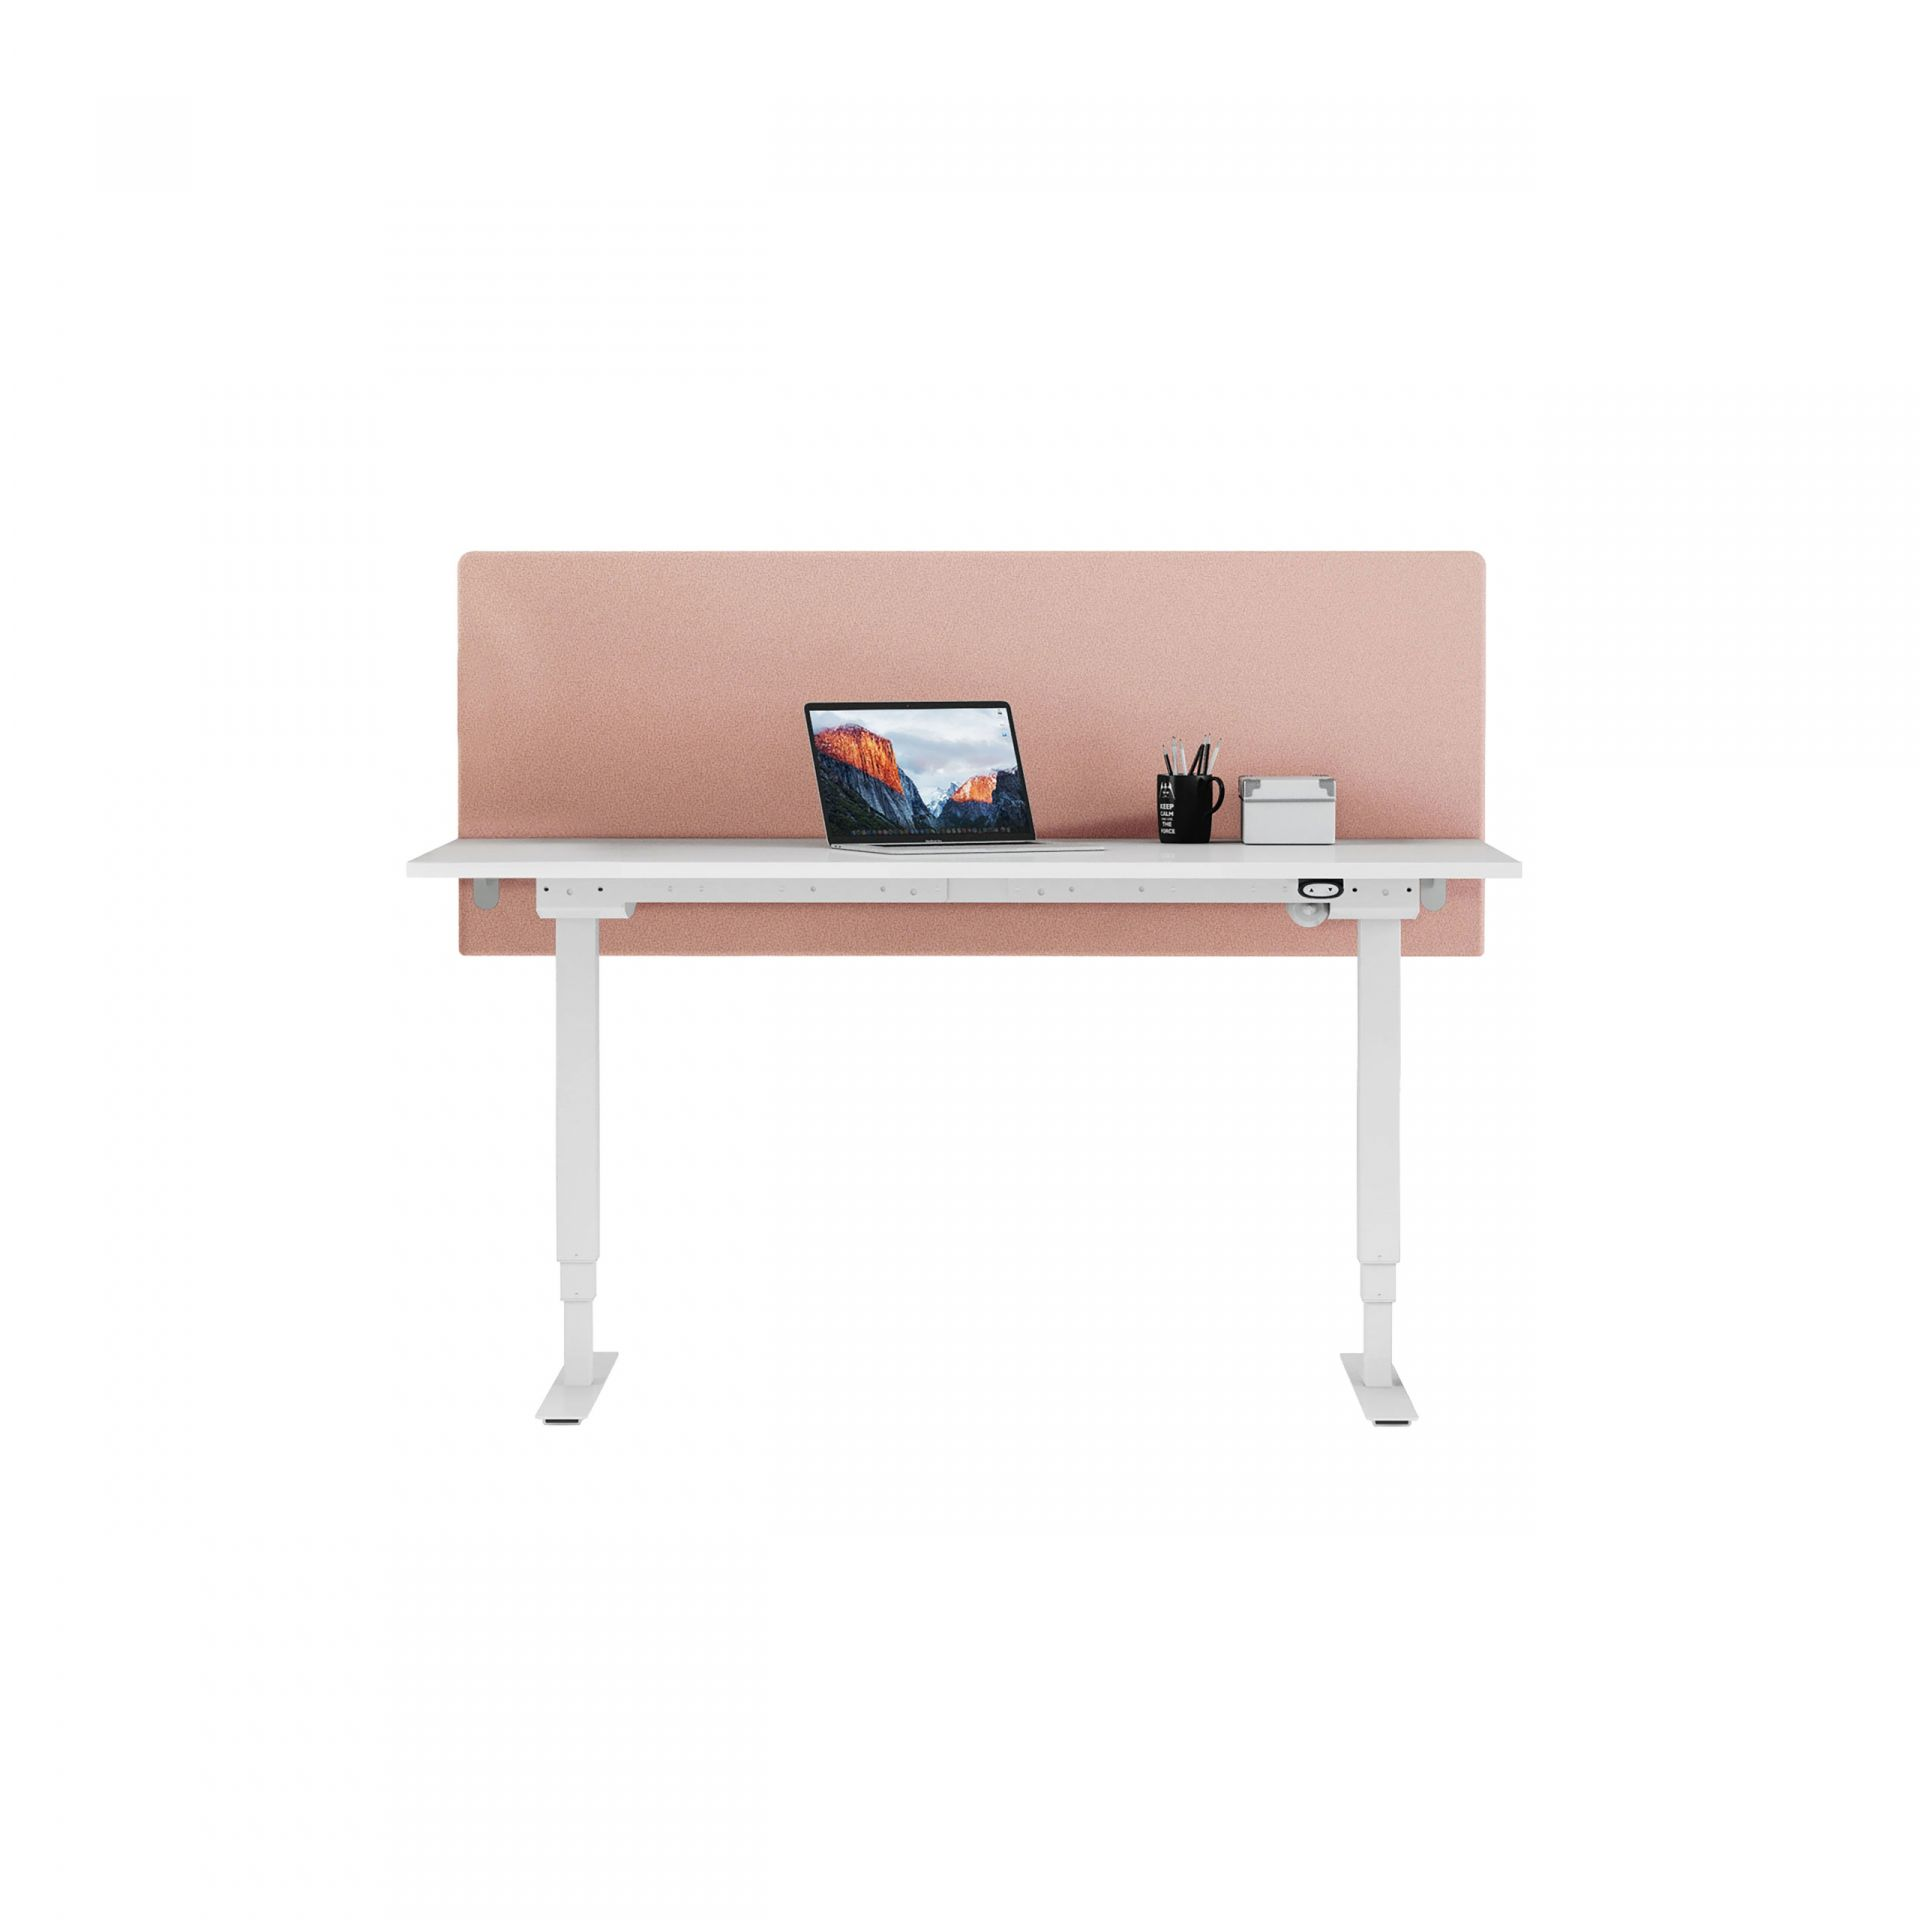 Tab S Table screen, acoustic product image 1